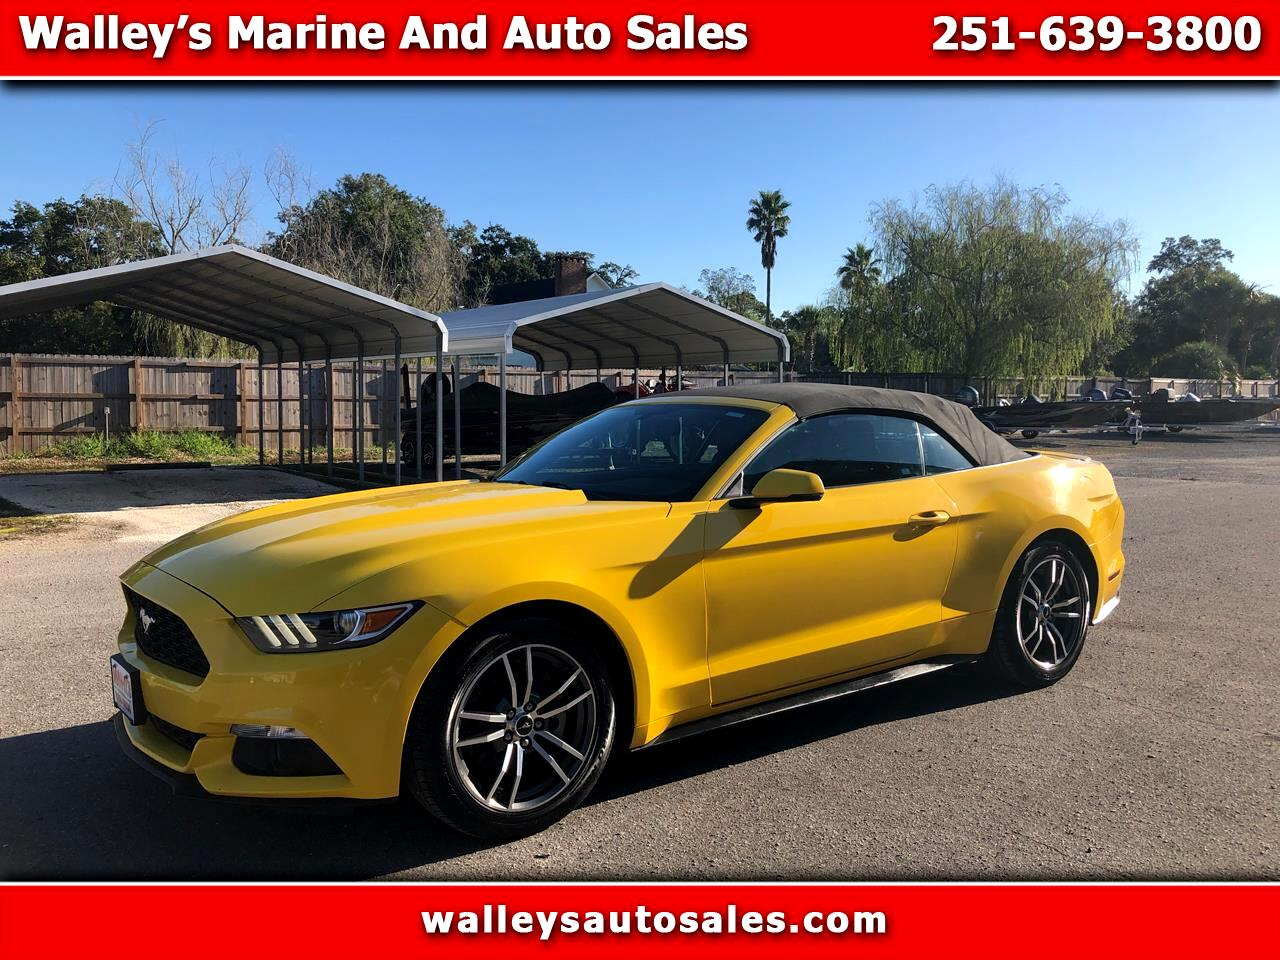 Ford Mustang 2dr Conv Deluxe 2017